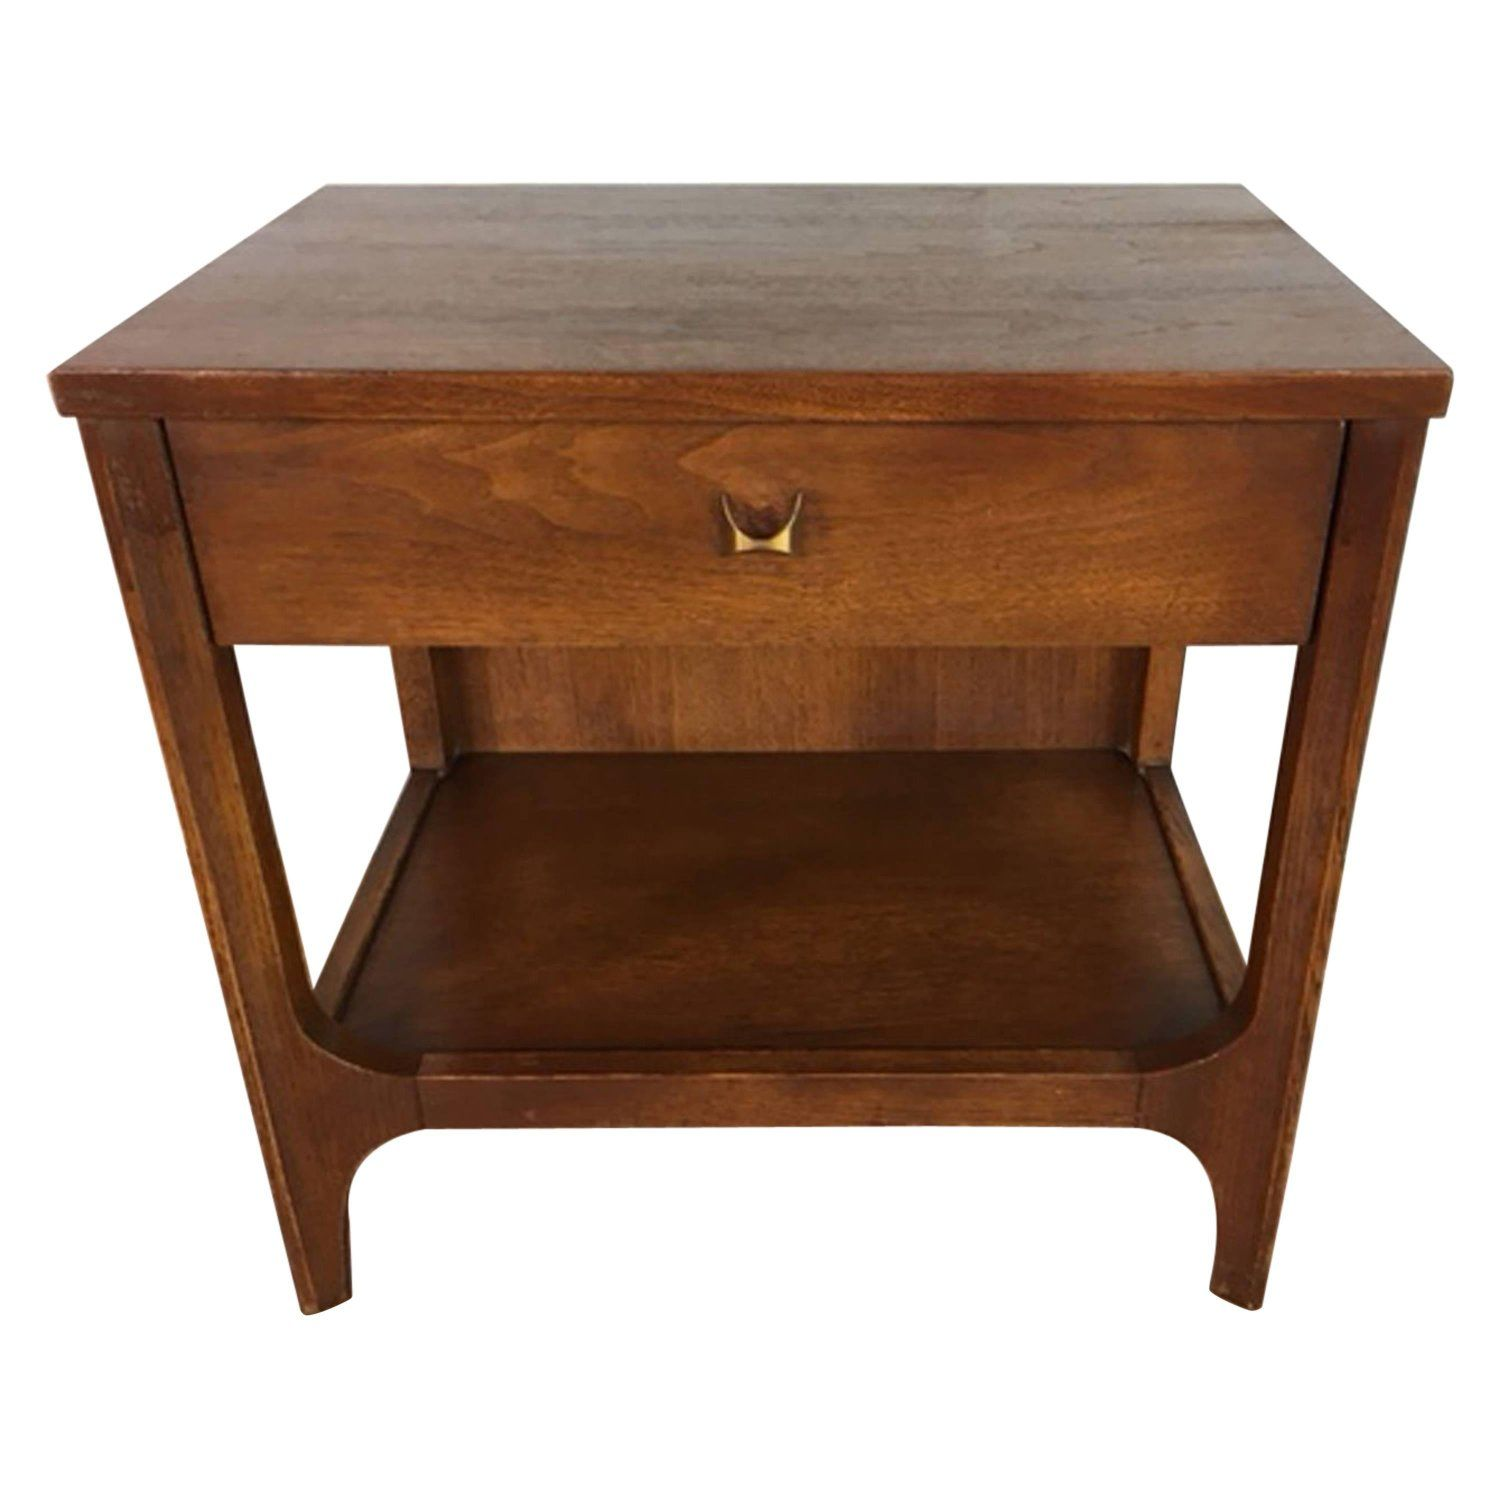 brasilia nightstand broyhill favorites used end tables jason lazy boy recliner chairs espresso colored laura ashley offers navy blue furniture vintage henredon bedroom ethan allen